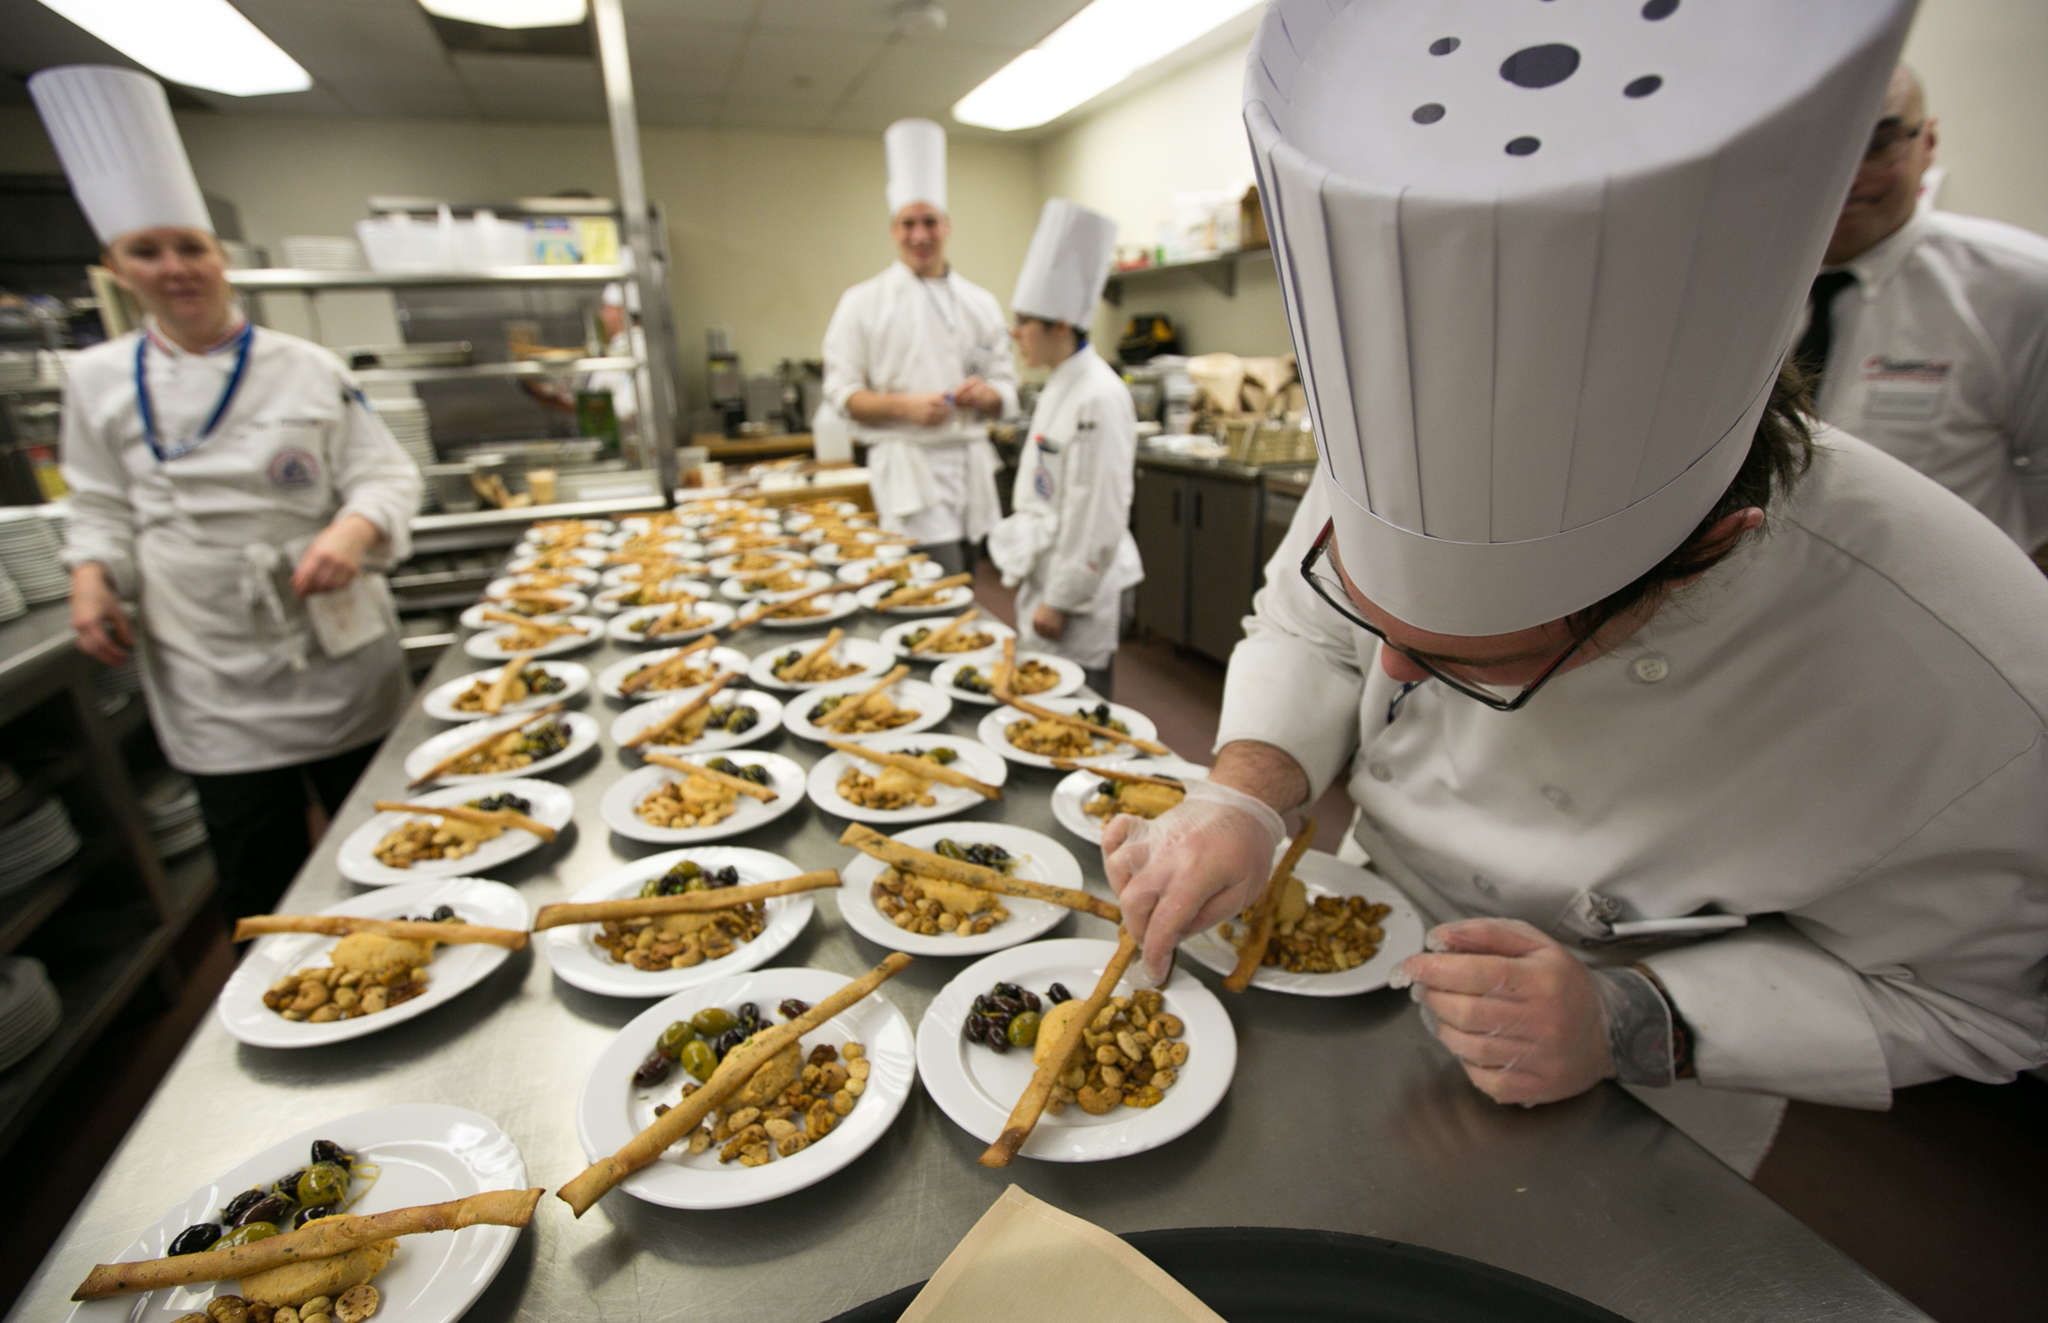 Peter Sroczynski, an Academy of Culinary Arts student, prepares plates for the springtime vegan dinner.